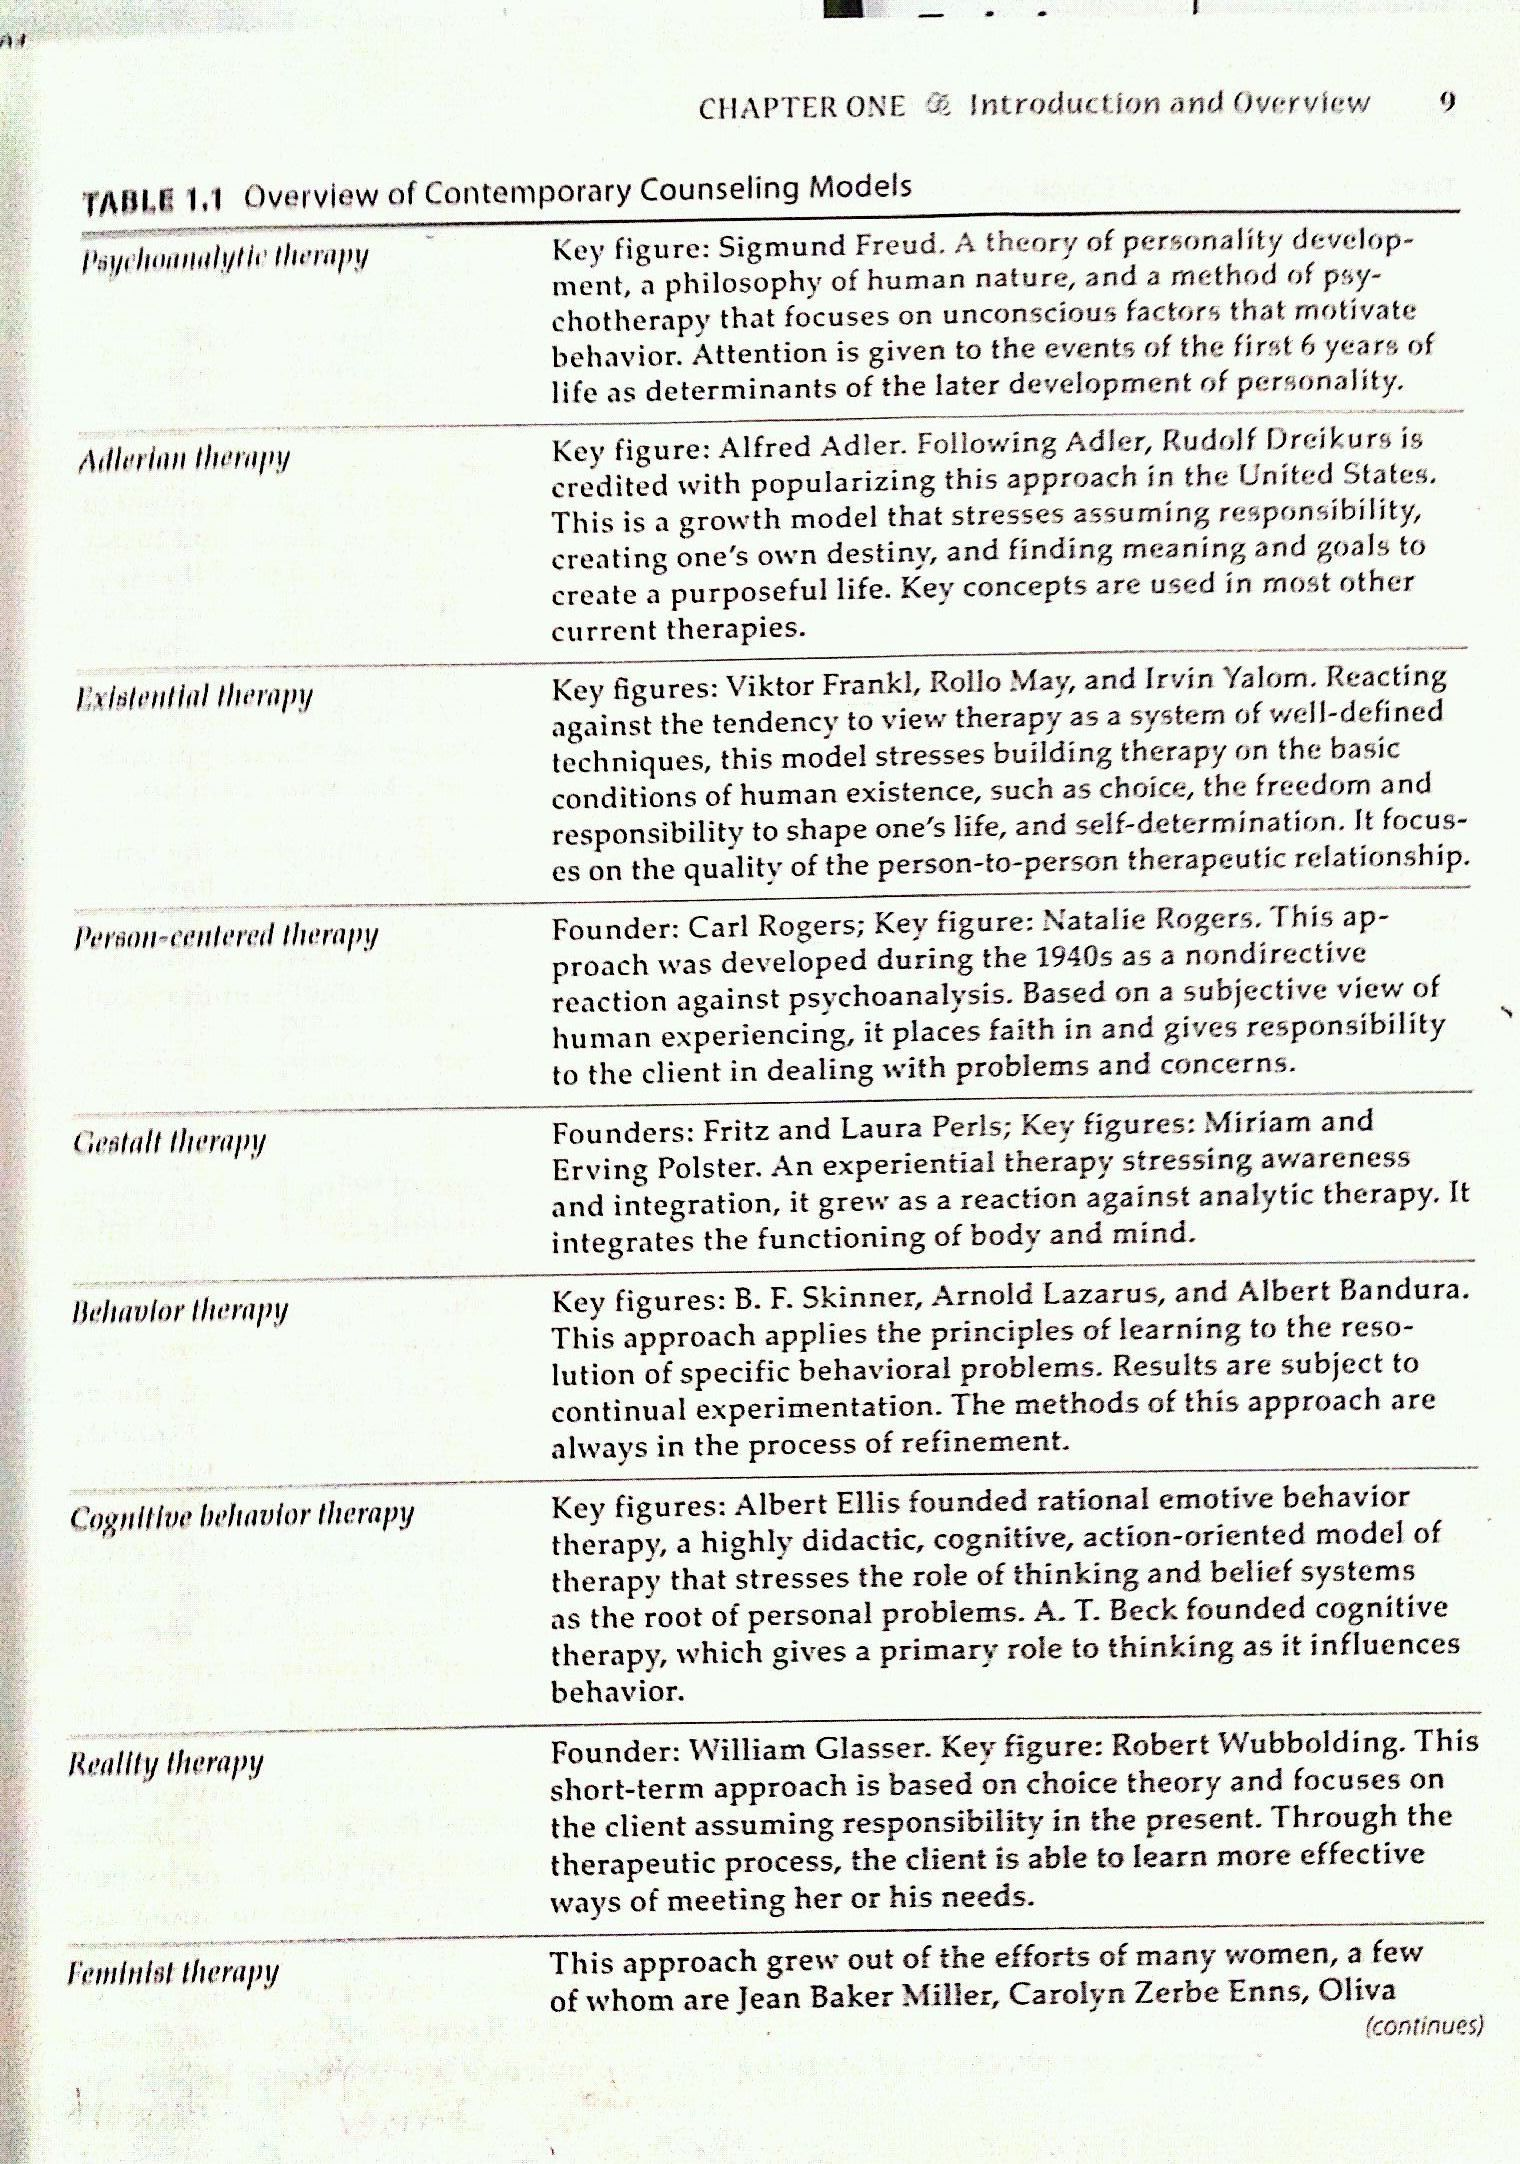 Theories Overview P1